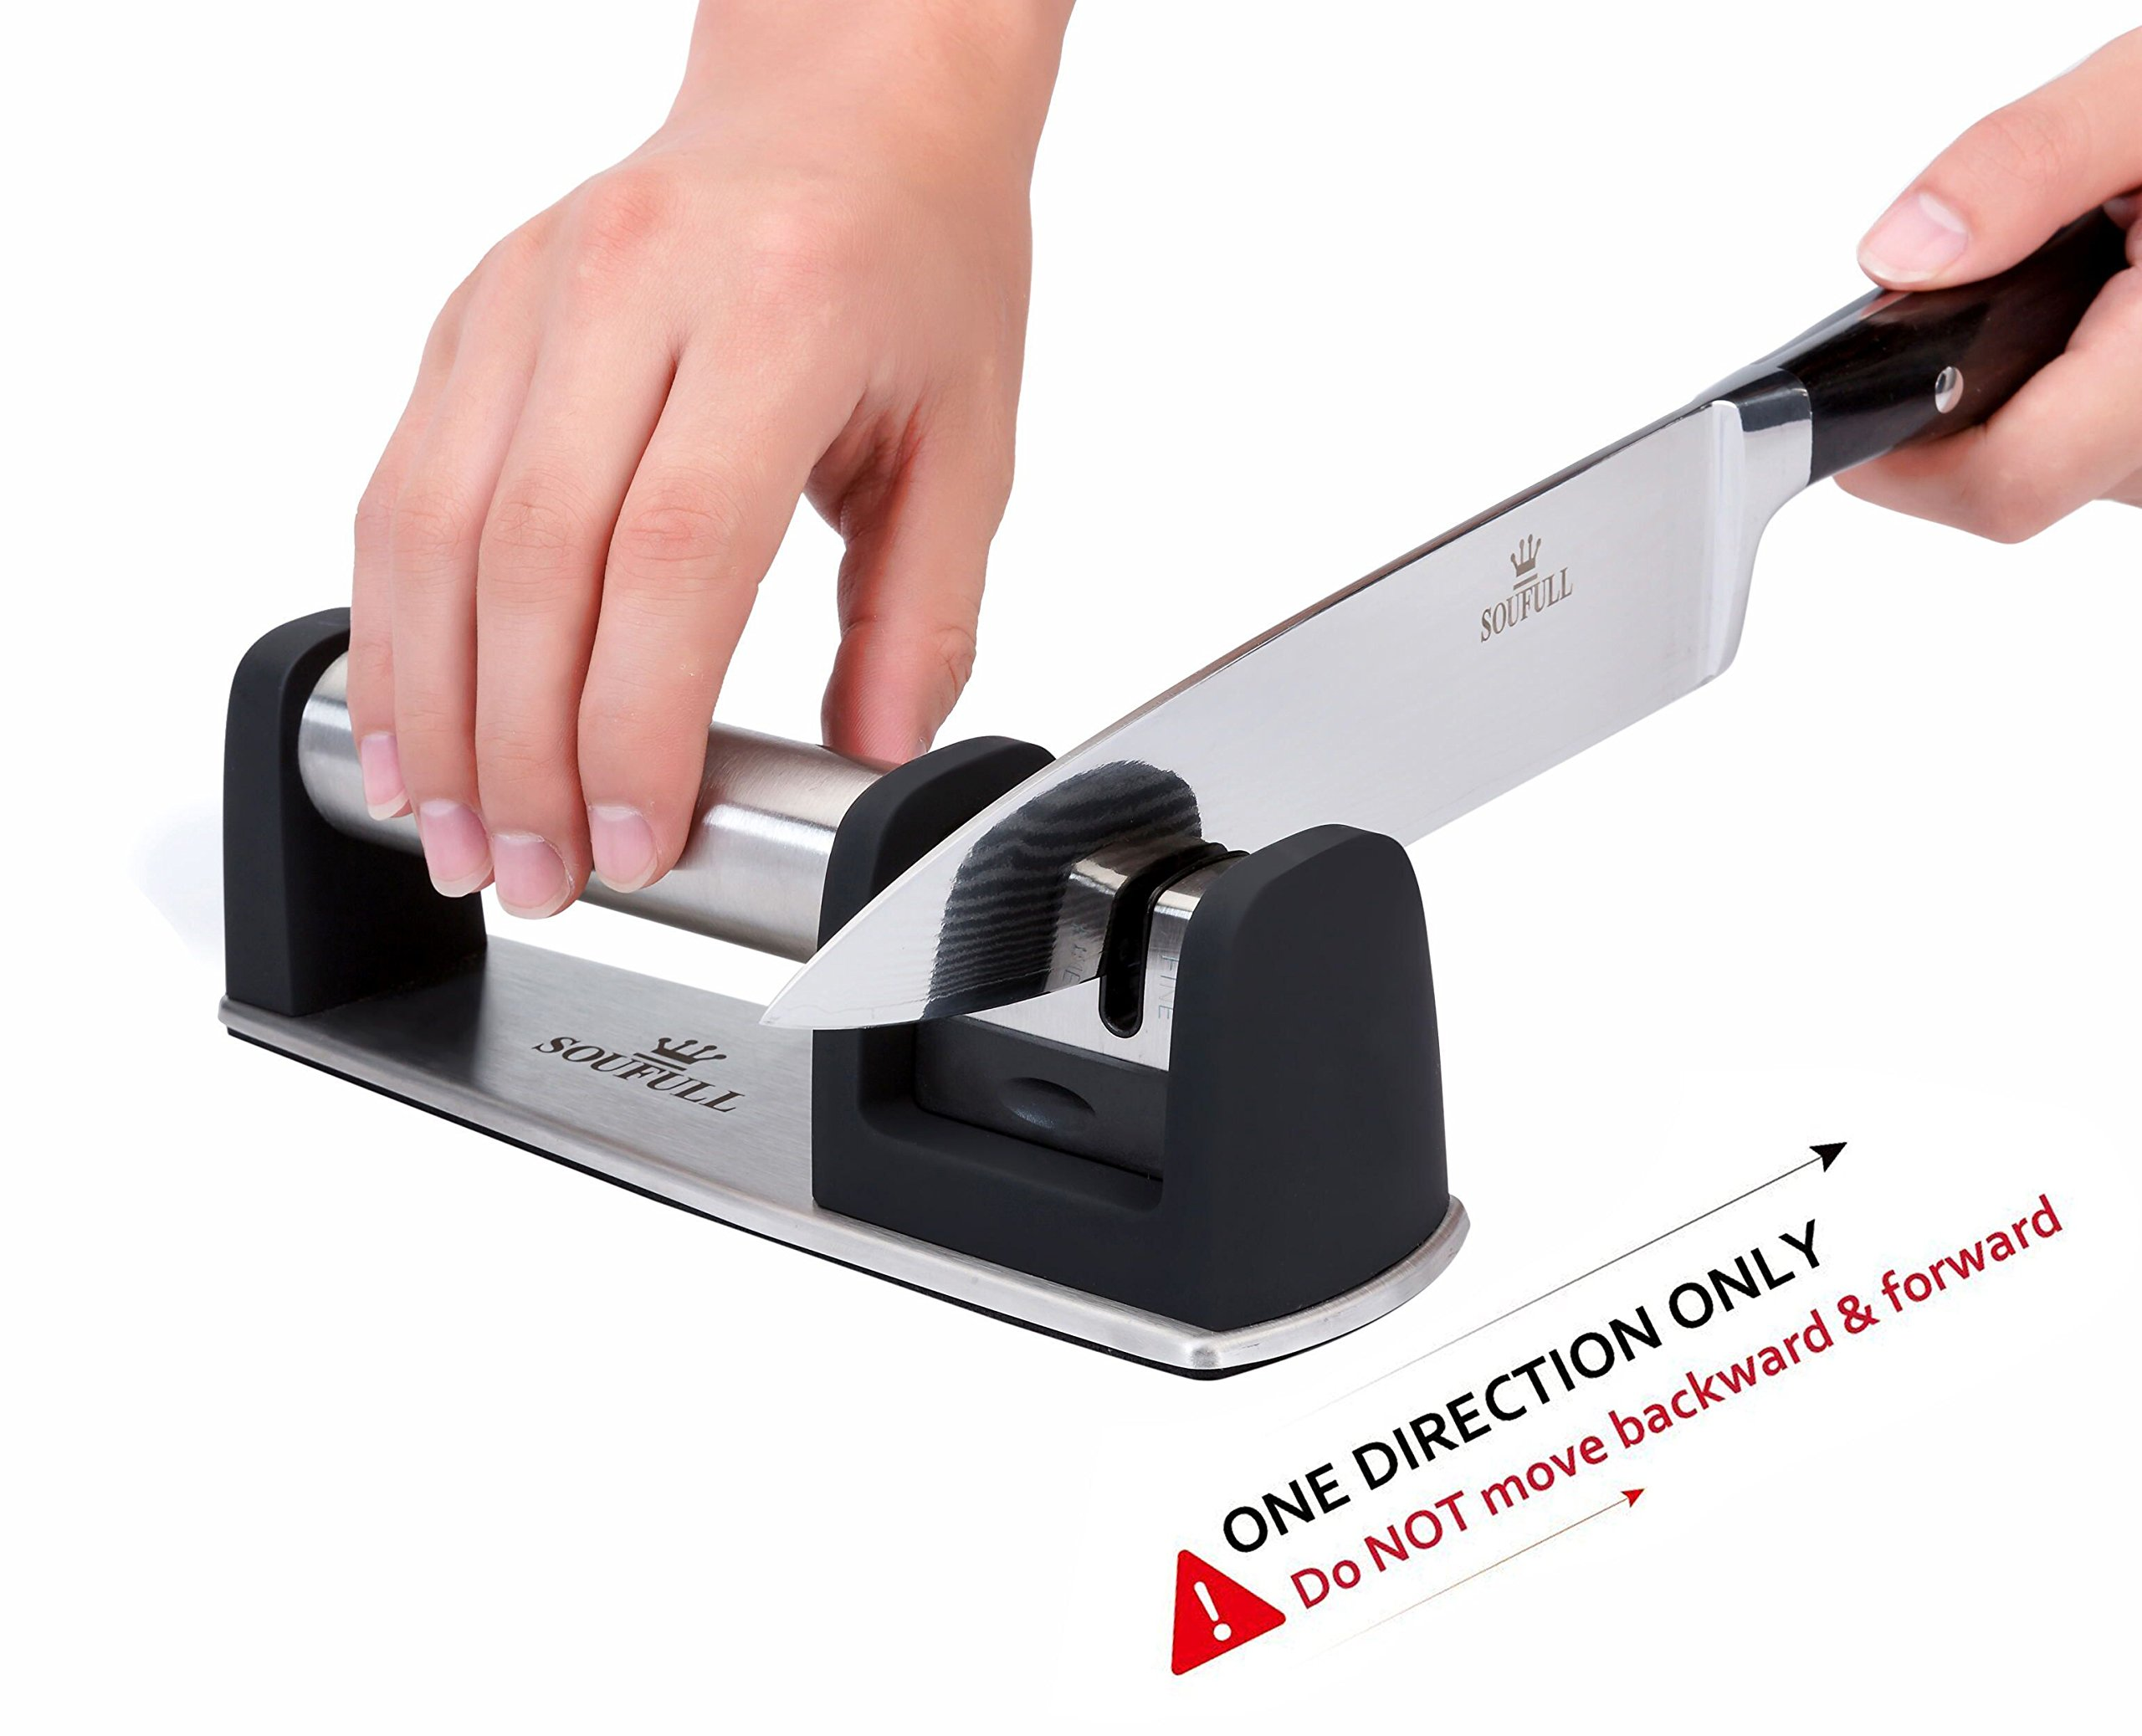 Professional Knife Sharpener- Soufull 2 Stage Diamond Coated Sharpening with Ceramic Rod - Non-slip Base Sharpening Knife Easy to Control -Knife Sharpening by Soufull (Image #5)